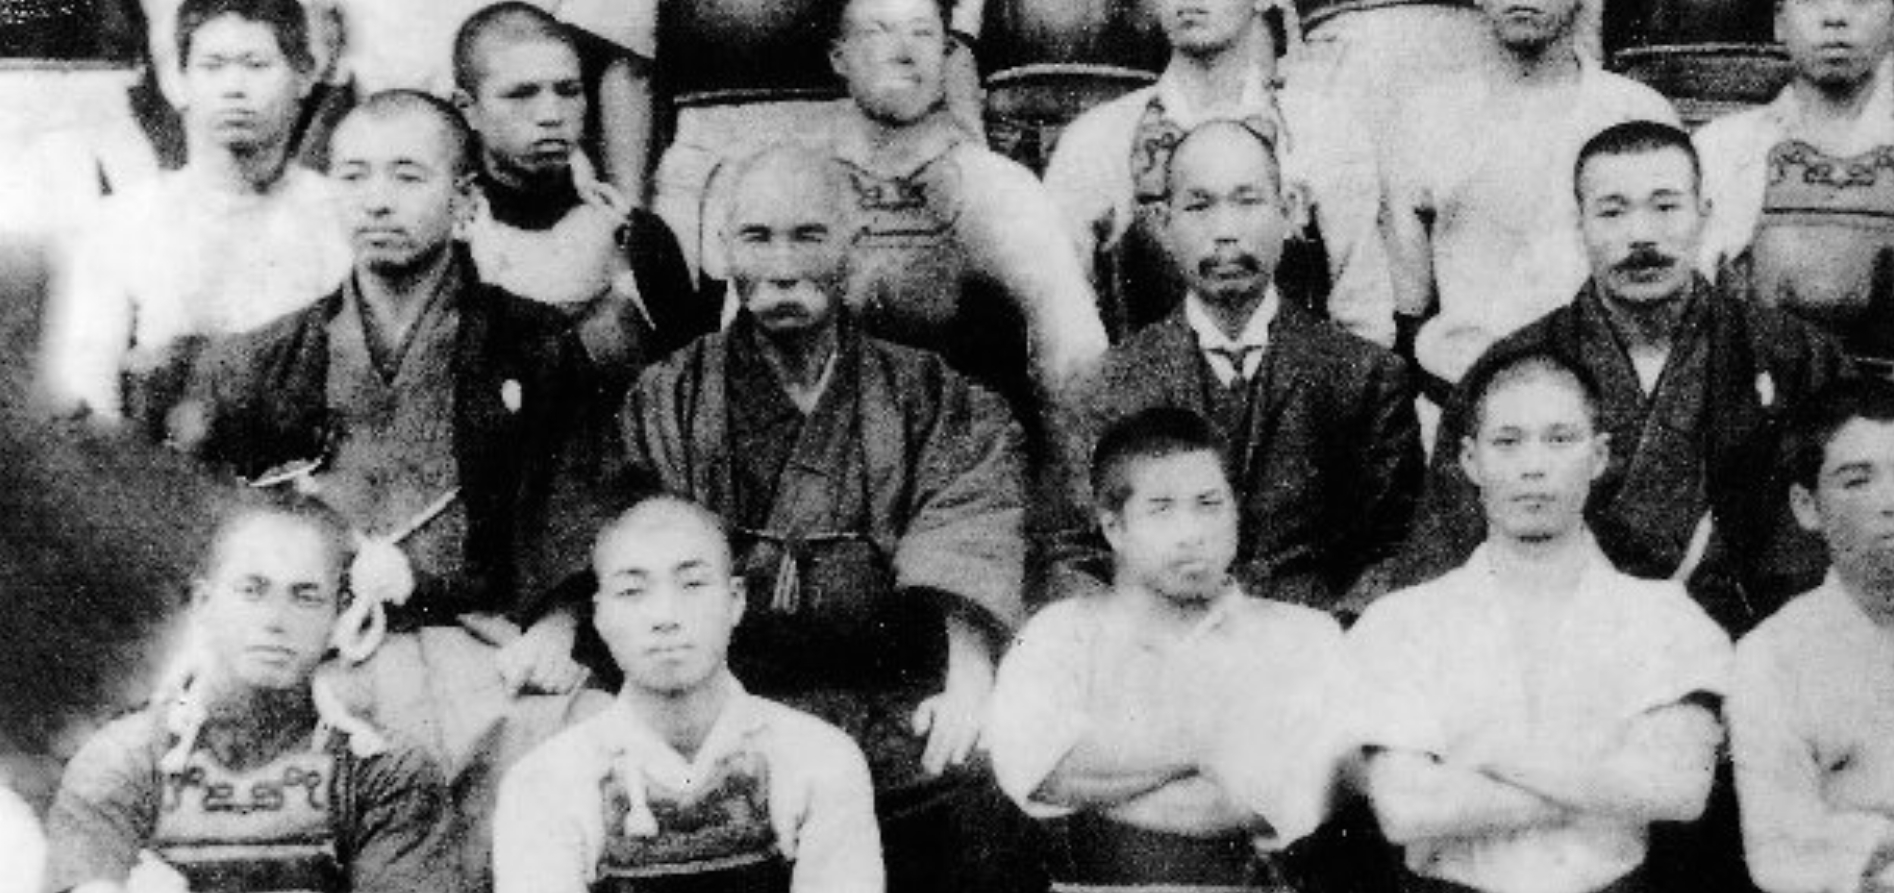 "In its July 2006 issue, ""Monthly Karatedō"" magazine (now discontinued) reported about a ""major historic discovery"". This refers to the above photograph. In its center can be seen a man with a mustache. This man was considered to be Itosu Ankō. At that time, the Okinawa Times also took up the news, but the man with the mustache was now identified as being a different person, namely Miyake Sango."